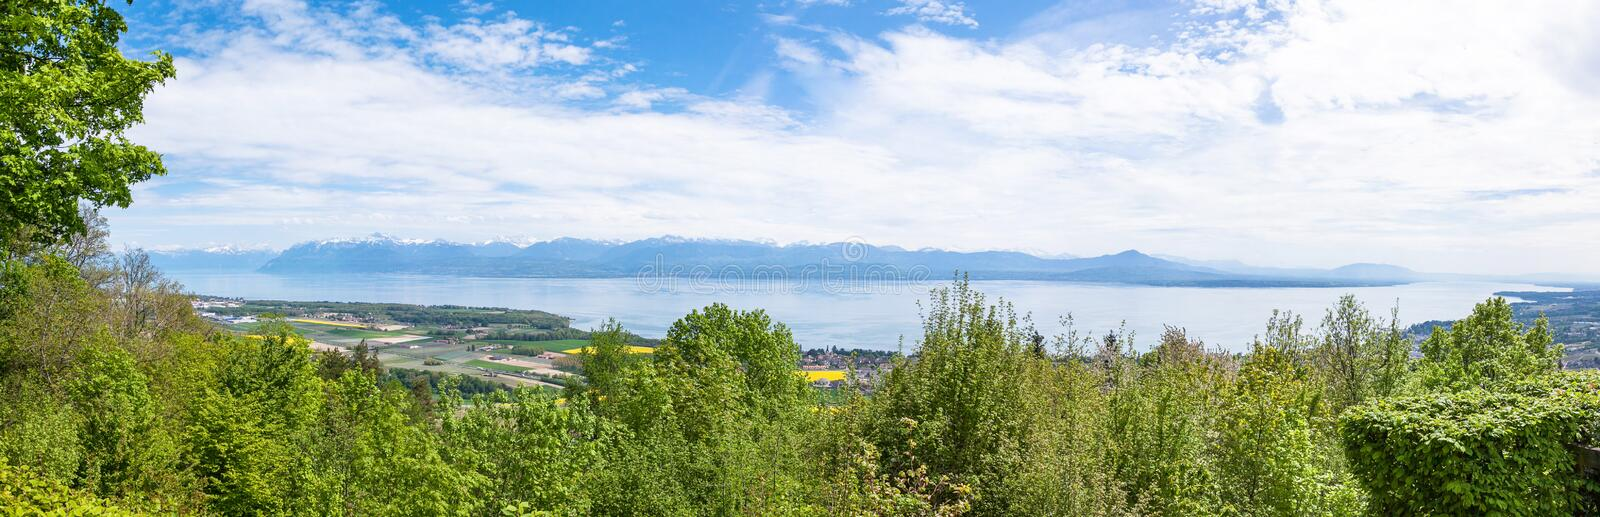 Download View Of The Leman Lake From Signal De Bougy Park Stock Image - Image: 31065653